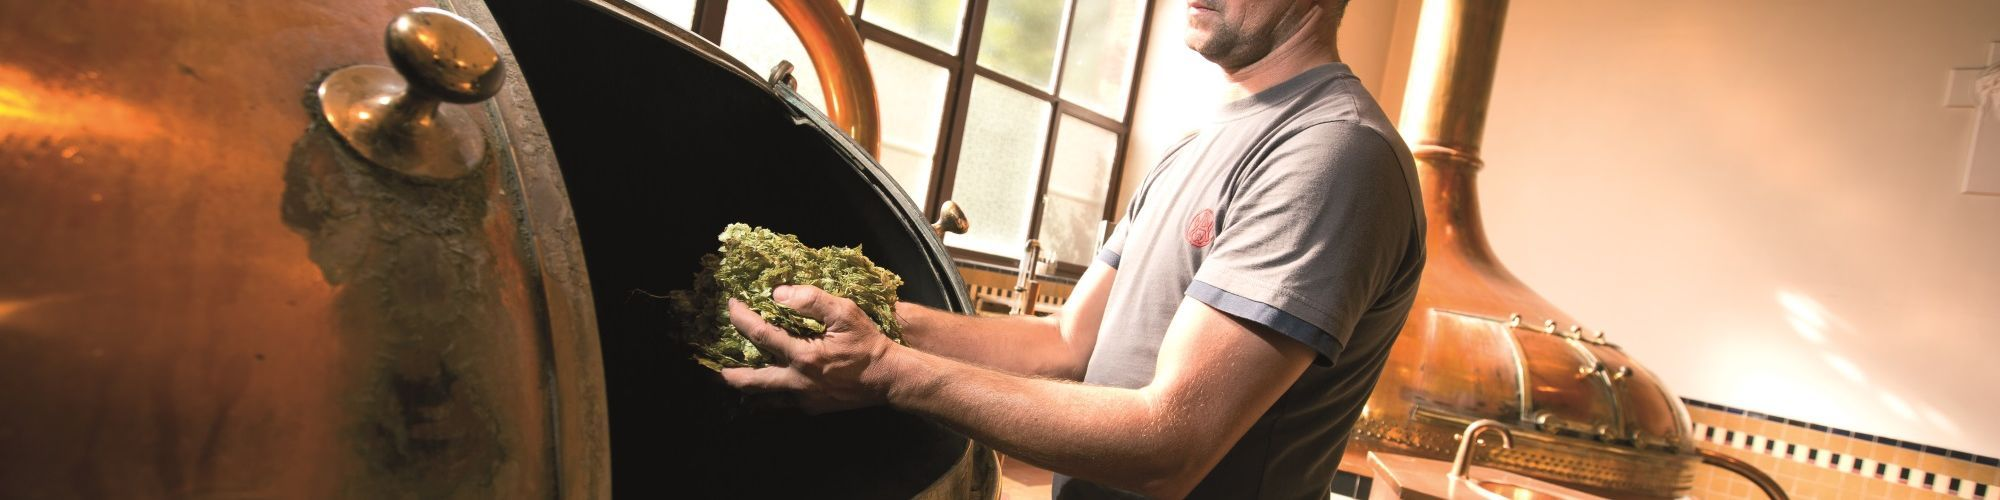 A brewer adds hop cones to the boiling kettle